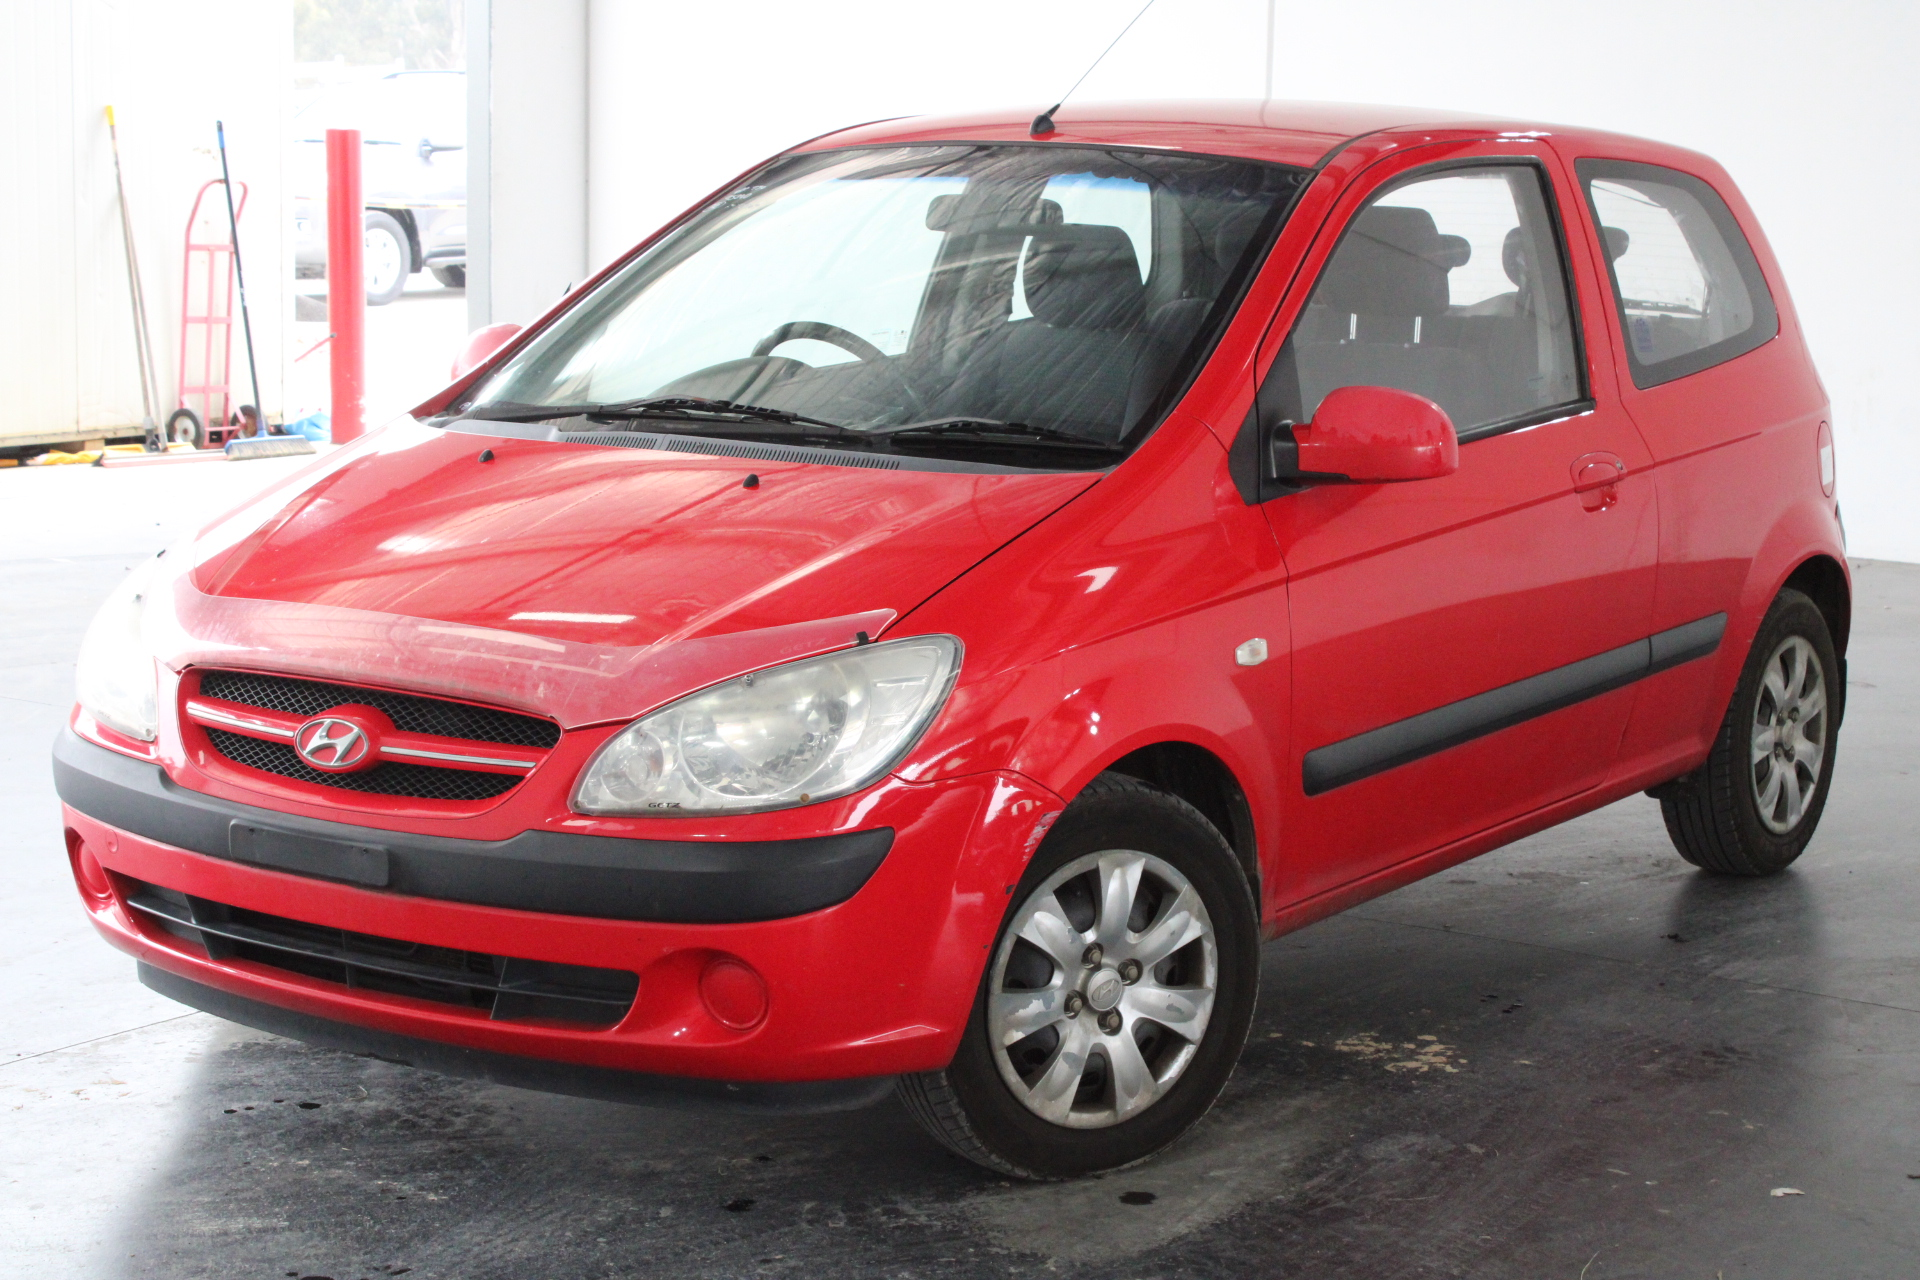 2006 Hyundai Getz 1.4 TB Manual Hatchback